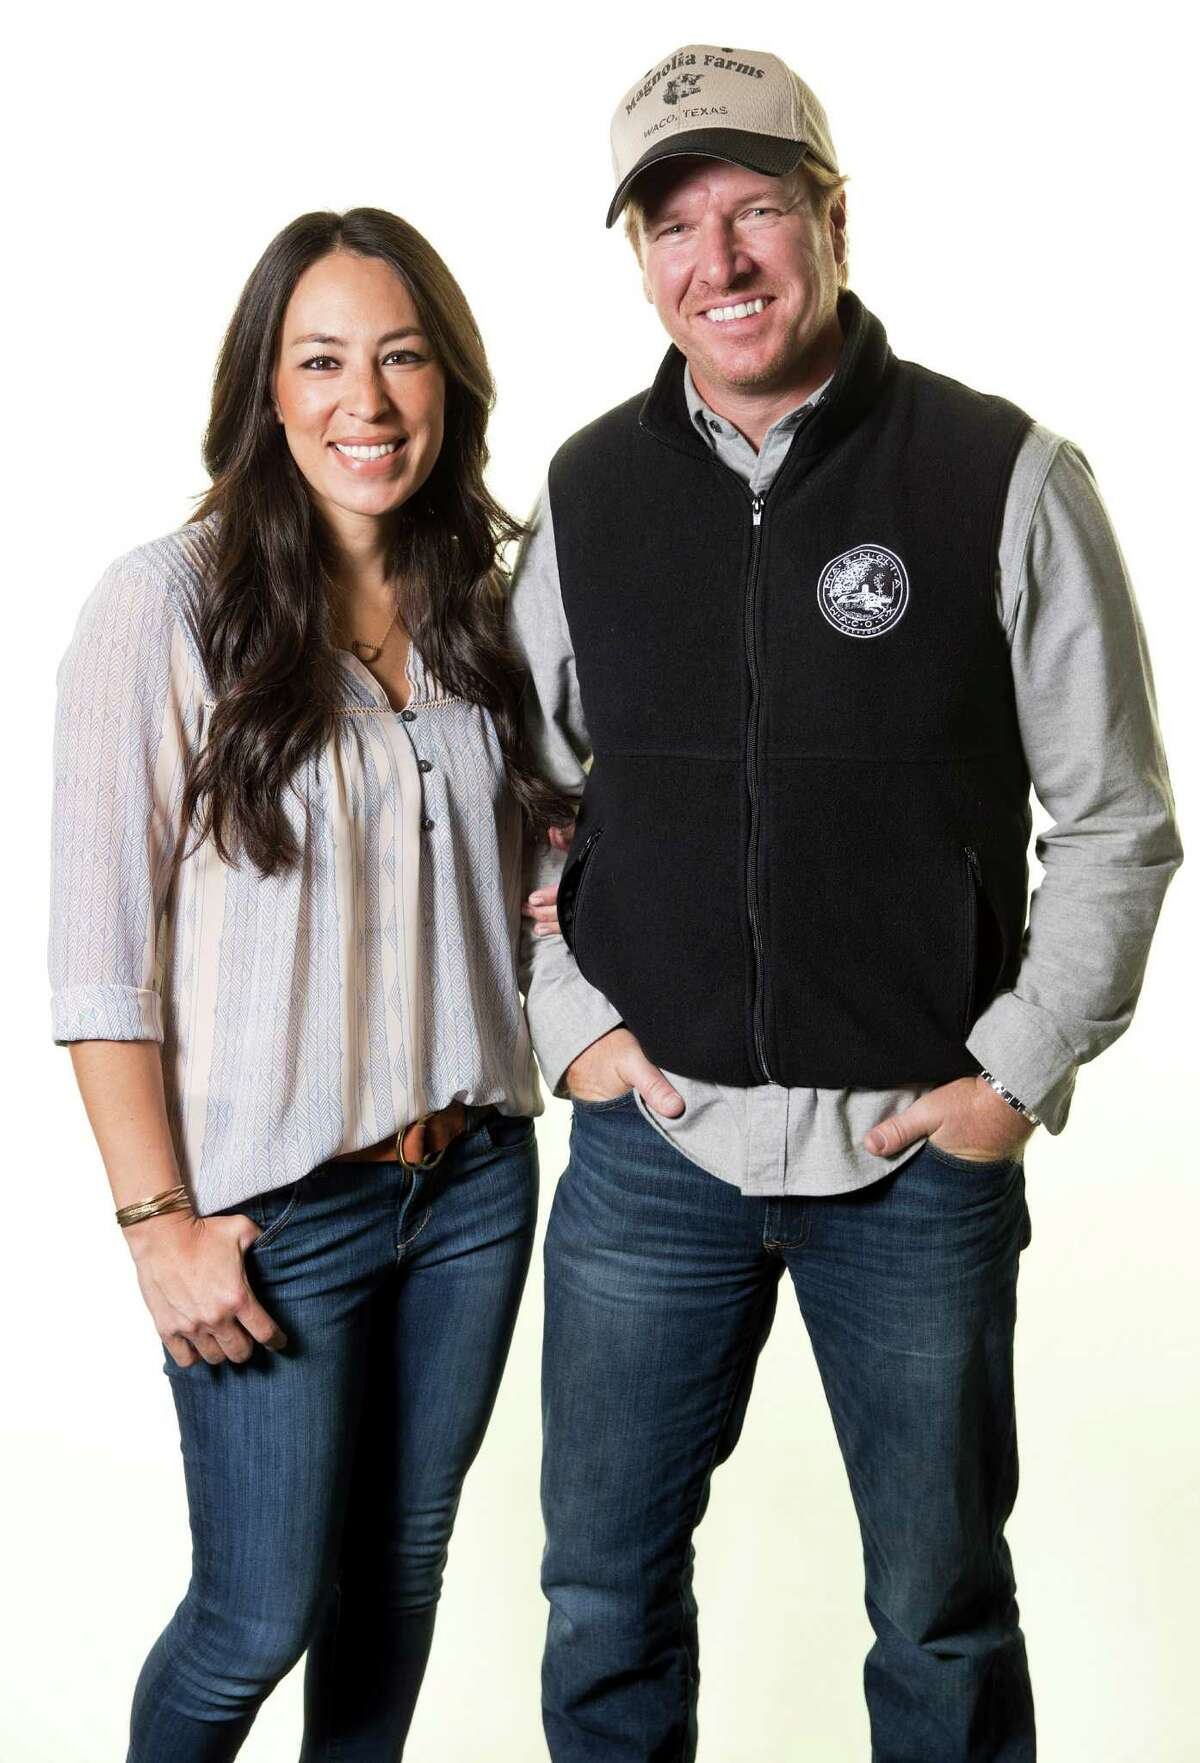 Chip and Joanna Gaines What you'll need: Subtle digs at each other's imagination, tech vests, black fingernails from hammer dings, splinters in weird places, millions of dollars.